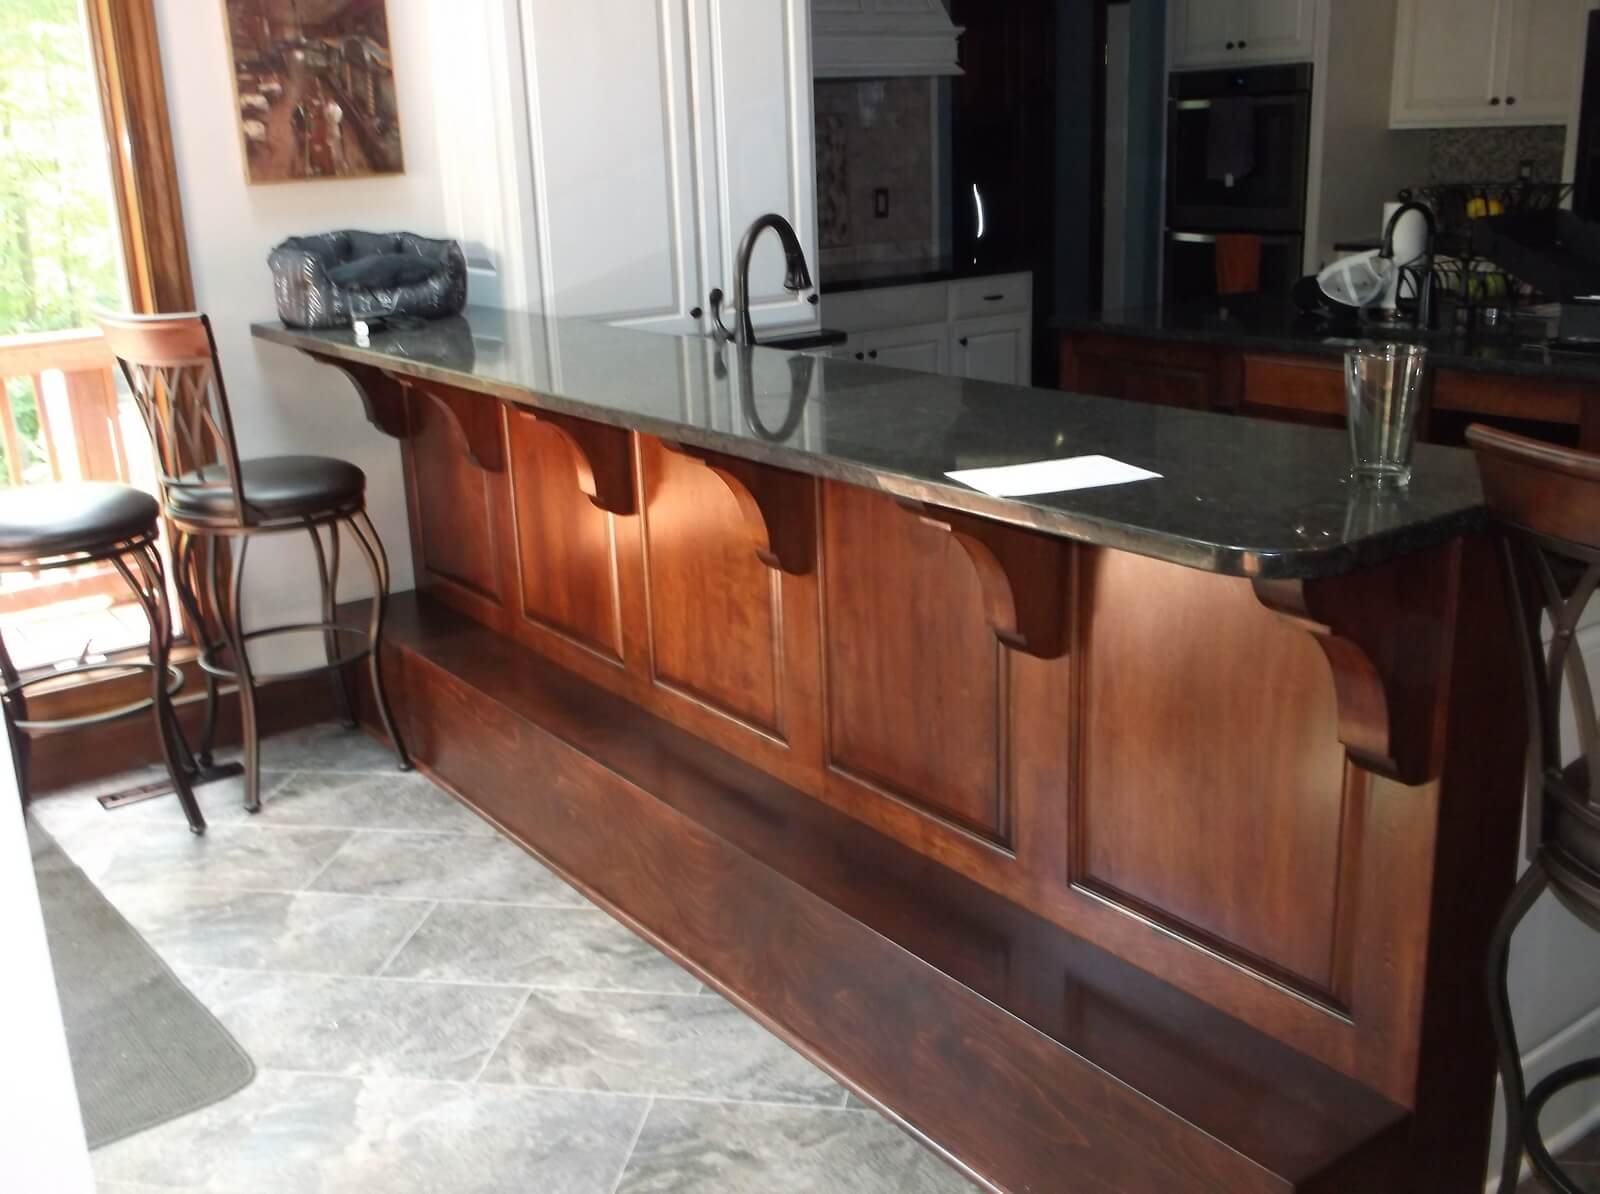 Merveilleux Yoder Cabinetry | Amish Custom Cabinets   Dundee, Ohio